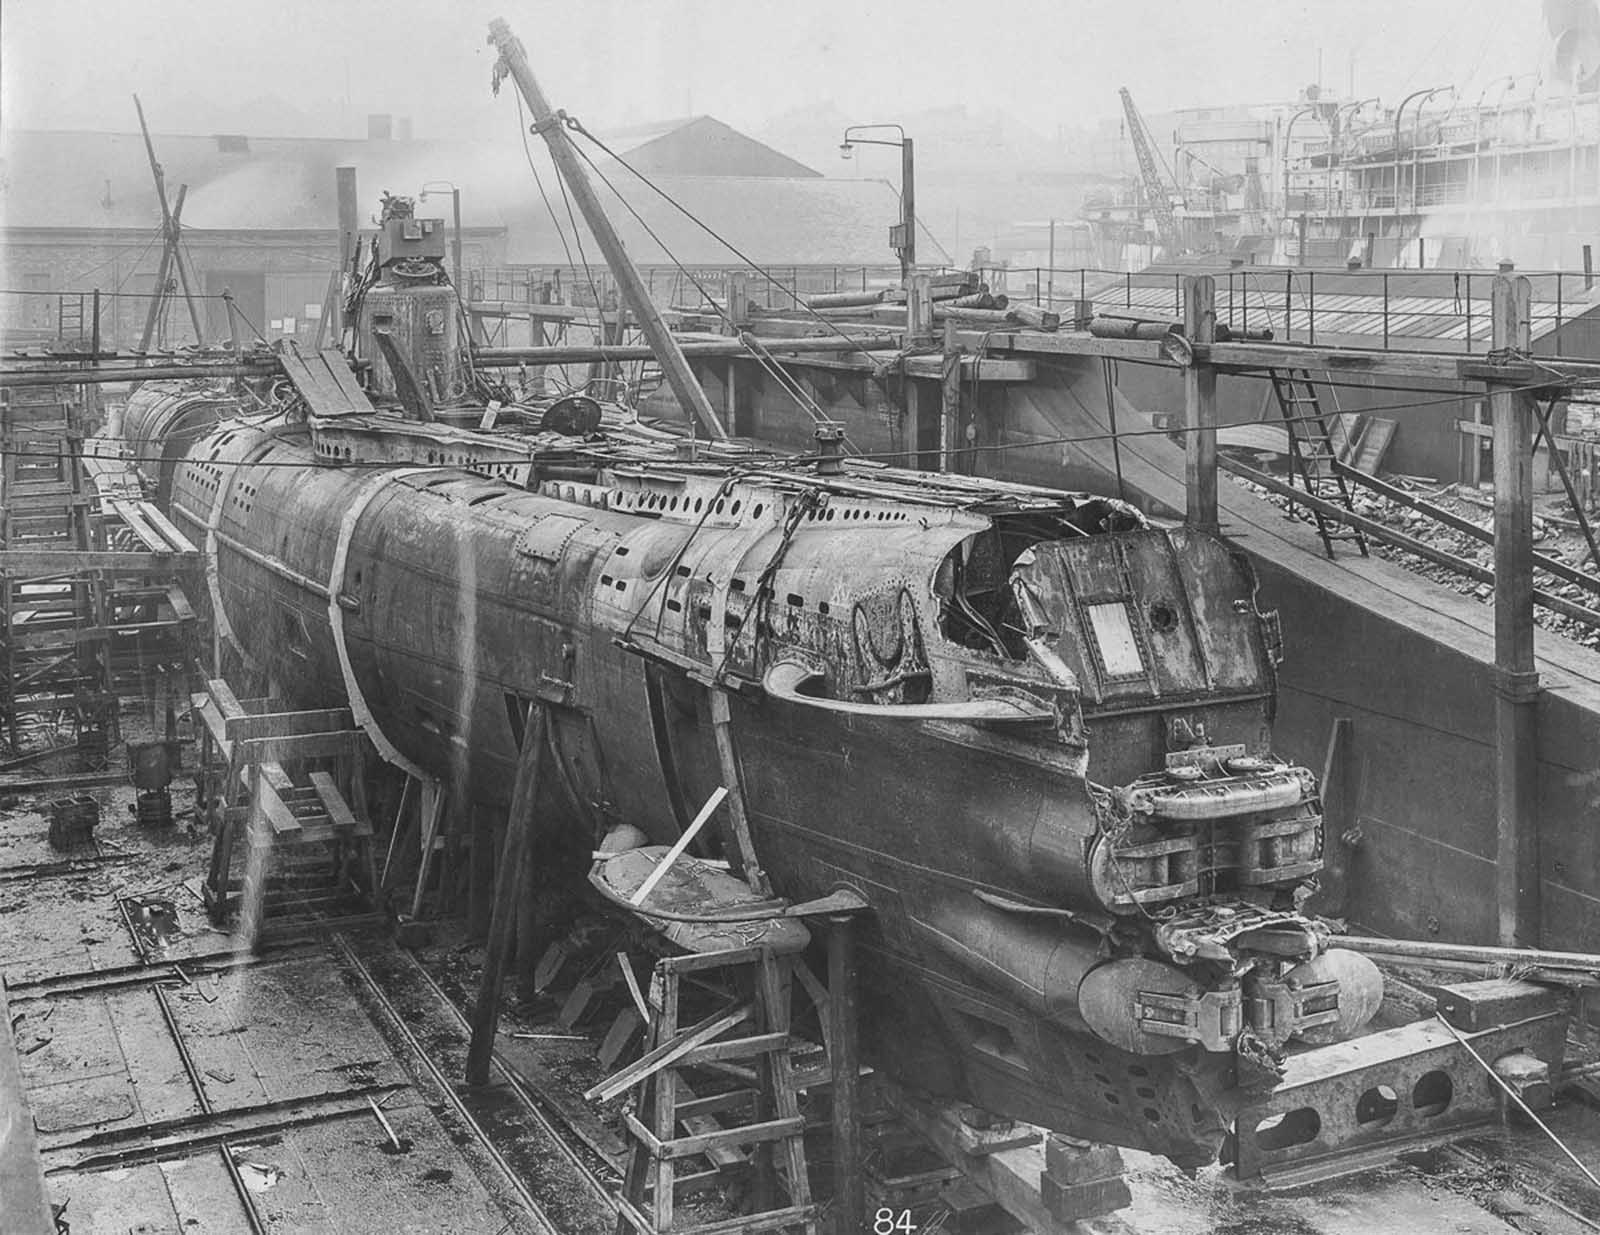 U-Boat 110 in dry dock.